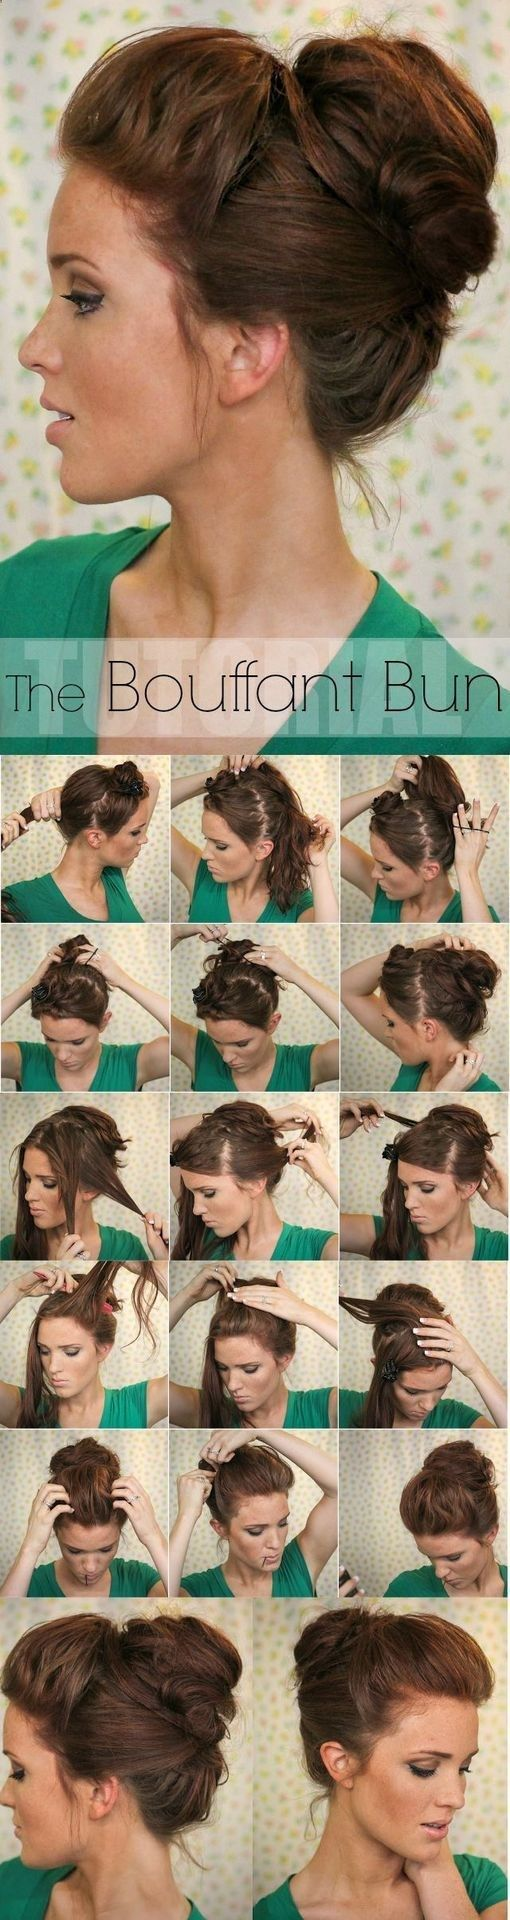 Swell 1000 Ideas About Thick Hair Updo On Pinterest Thick Hair Short Hairstyles For Black Women Fulllsitofus